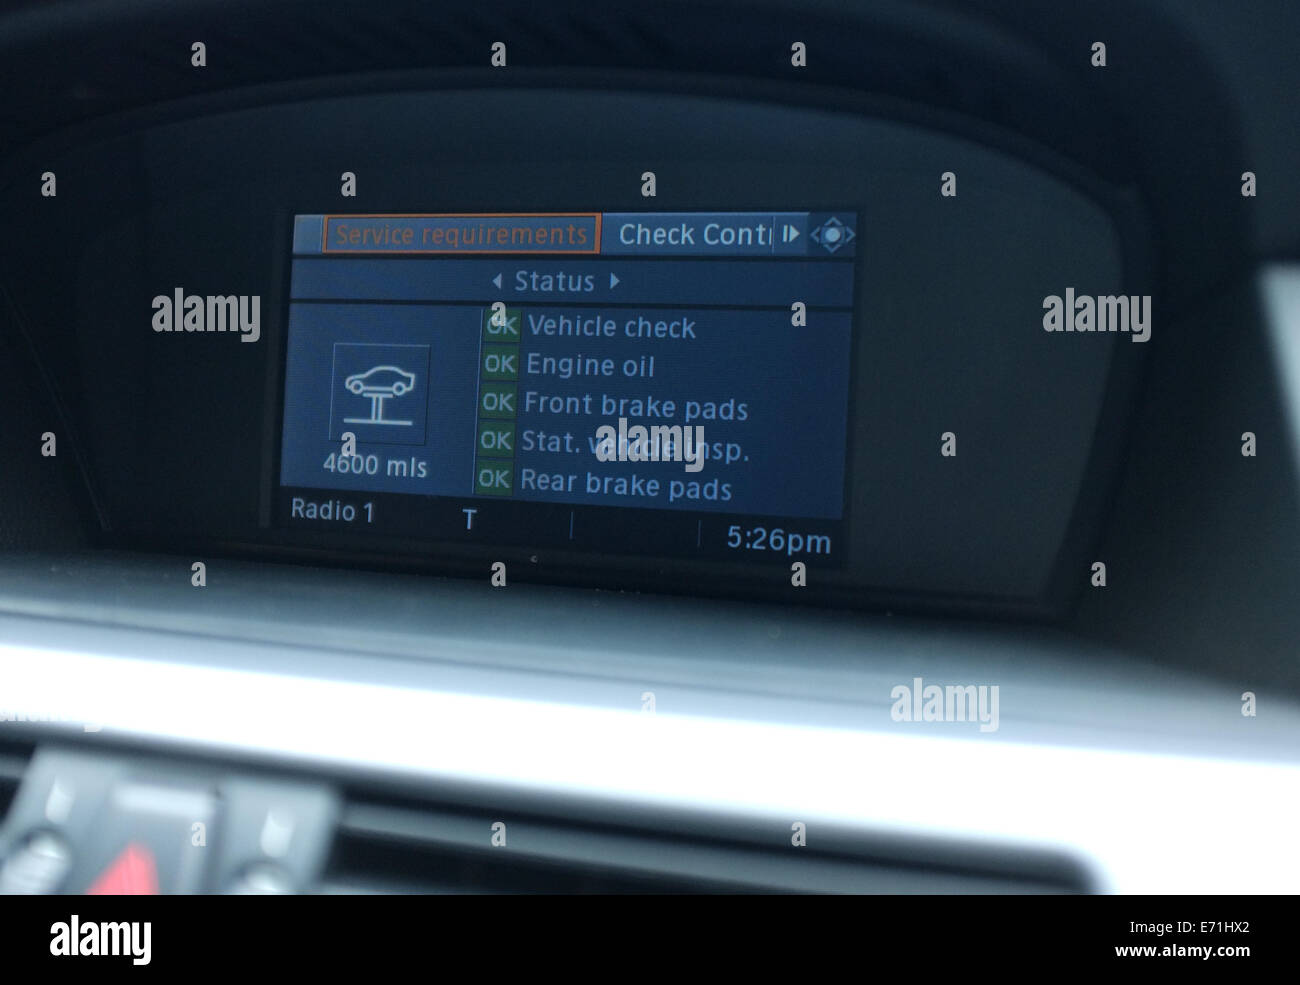 2008 Bmw Car Idrive Information Screen Showing Vehicle Service Stock Photo Royalty Free Image